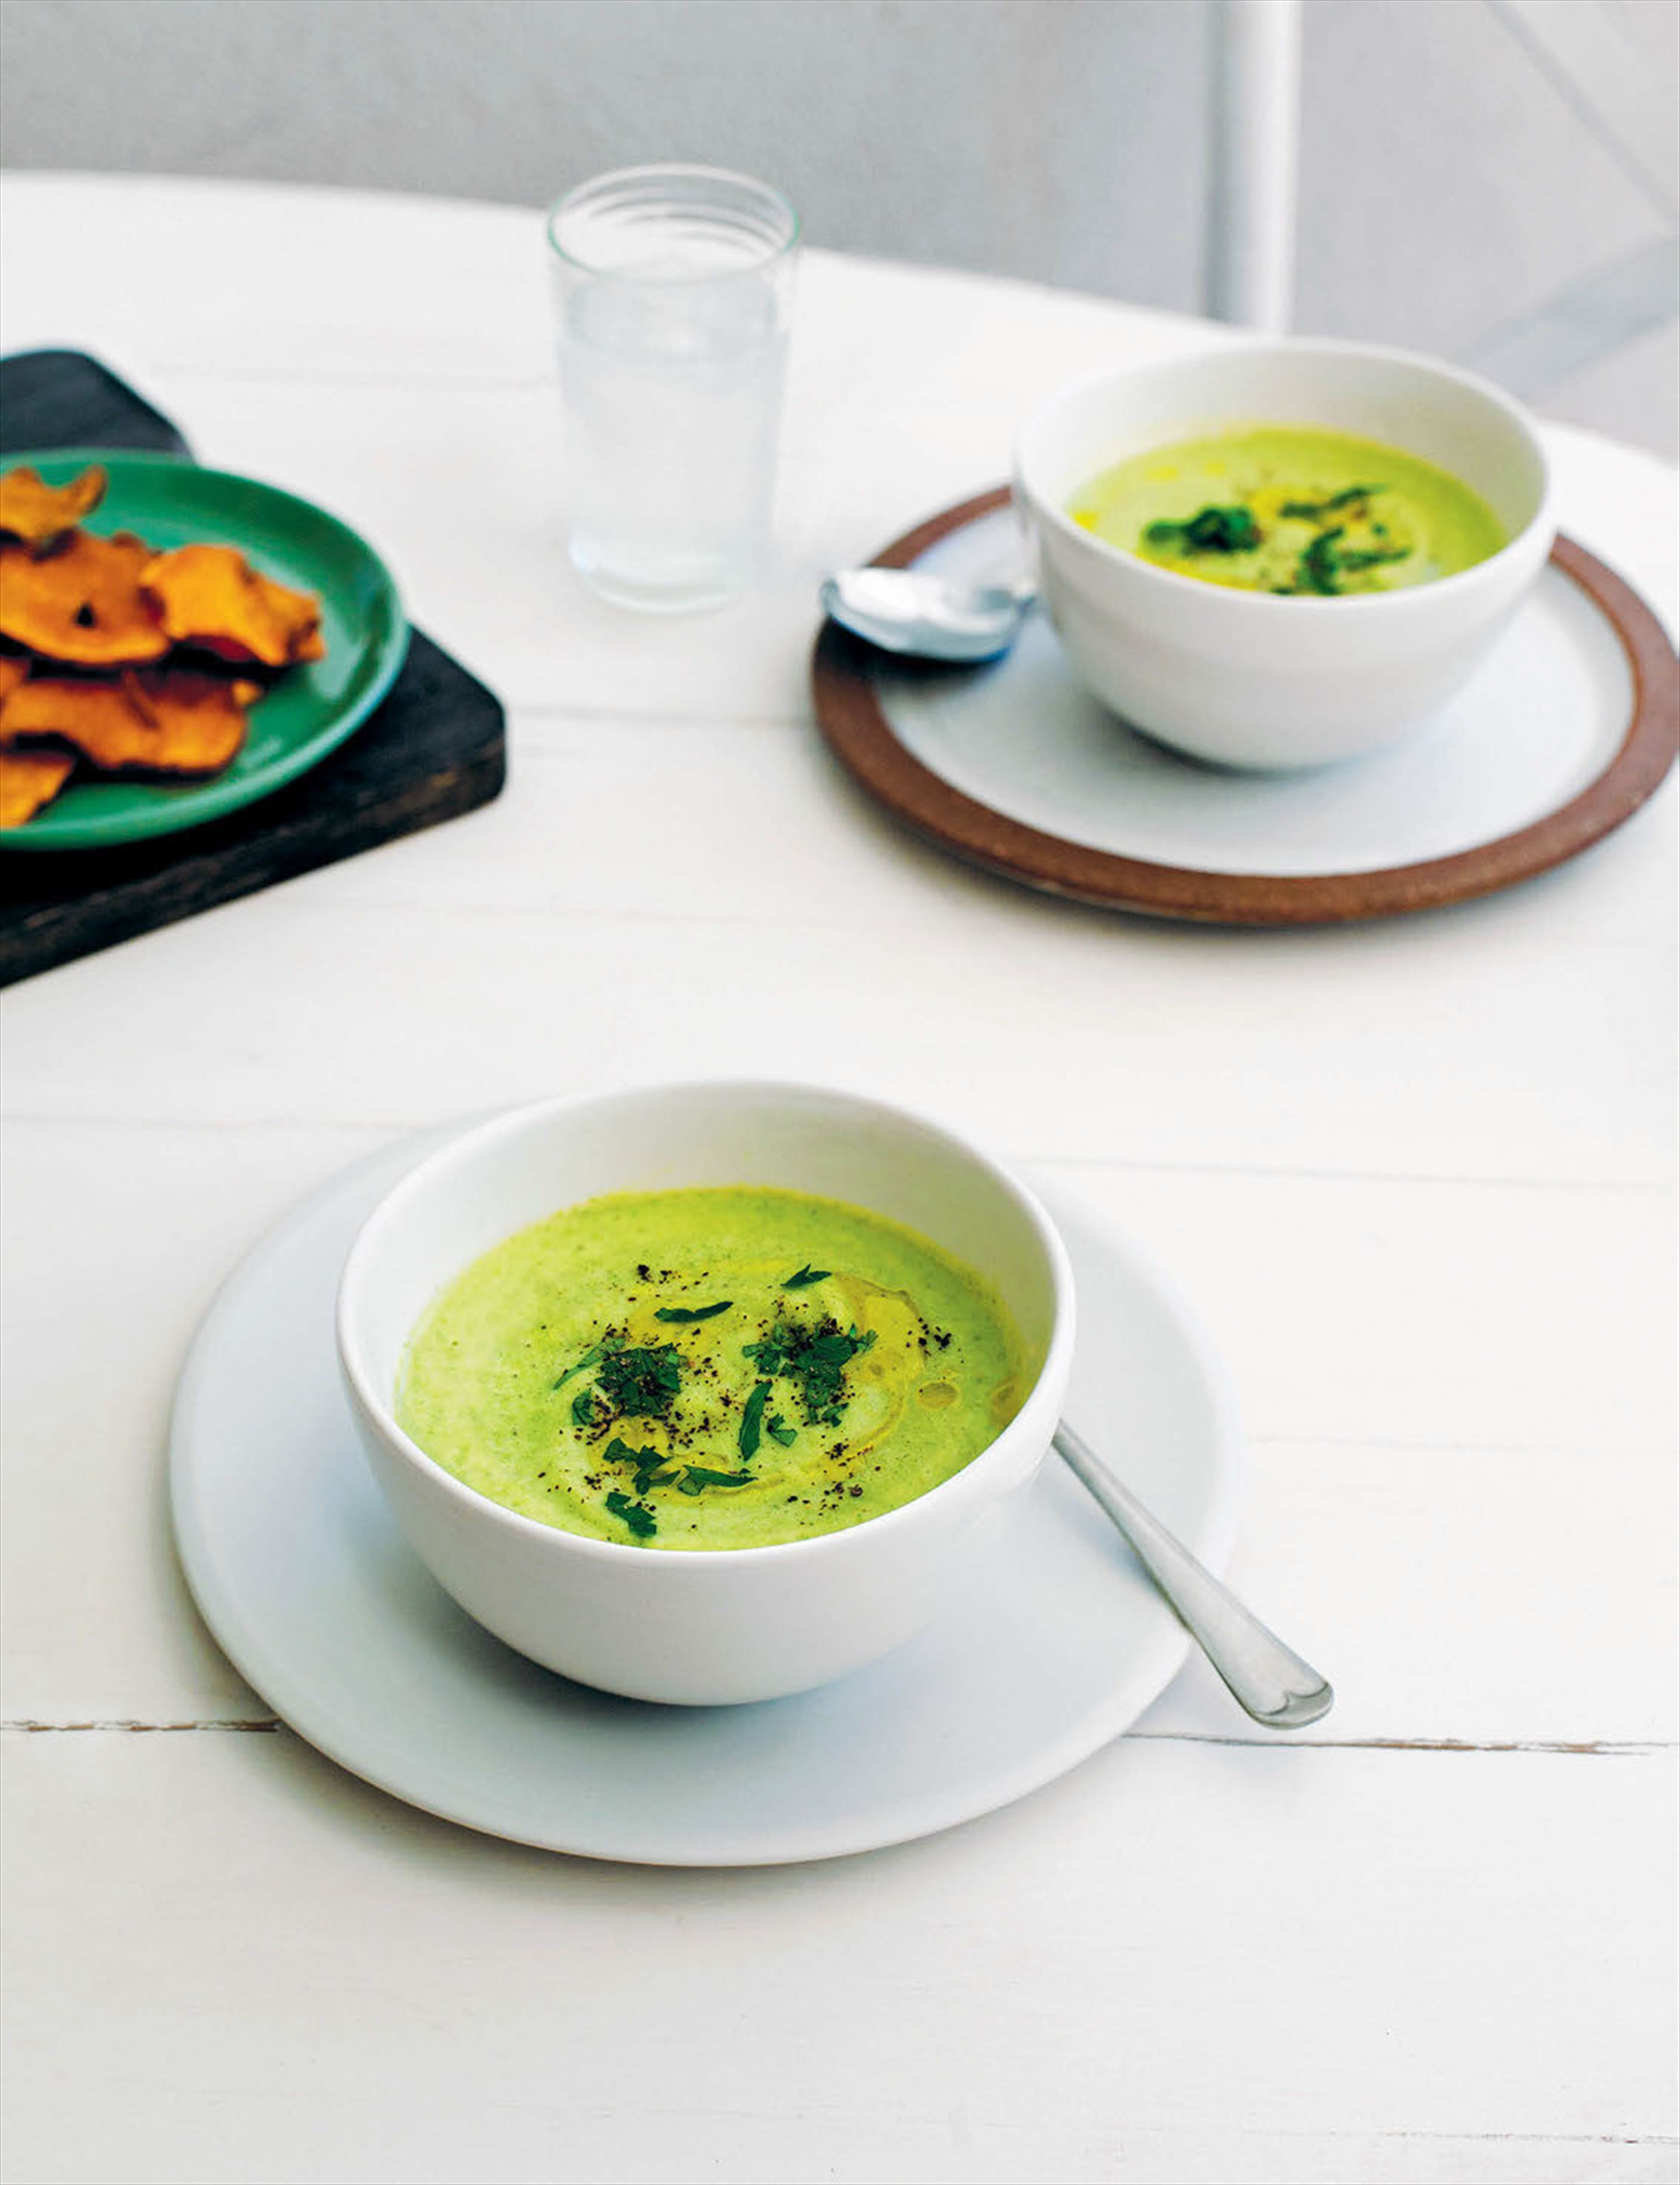 Cauliflower and broccoli soup with sweet potato crisps